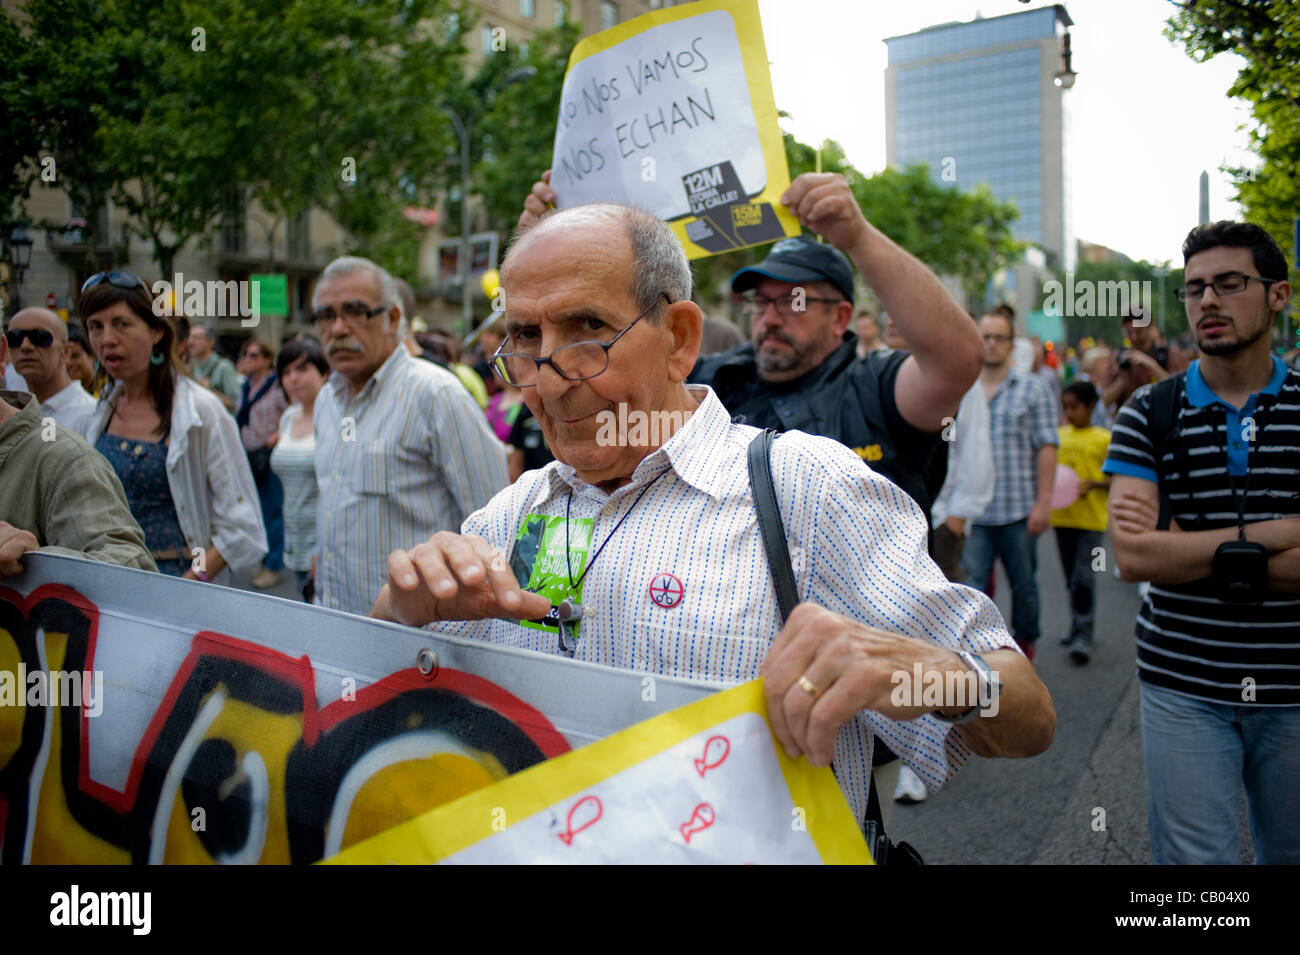 12 May, 2012-Barcelona, Spain. Man carrying the main banner. On the anniversary of the indignant movement (born - Stock Image